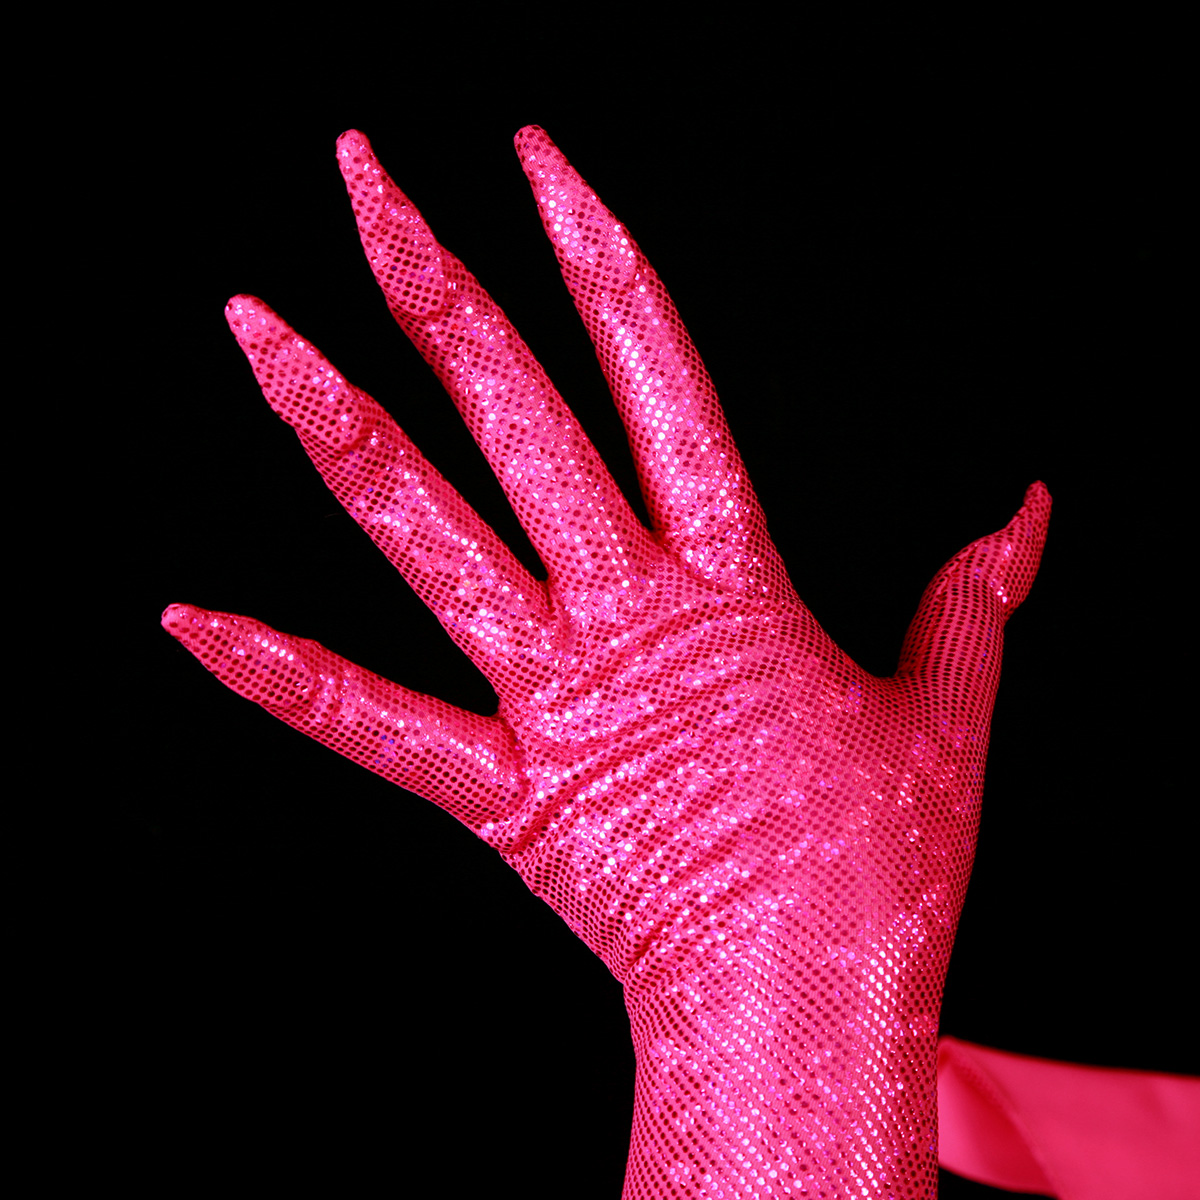 A hand is shown wearing a sparkly hot pink glove, with built in claws.